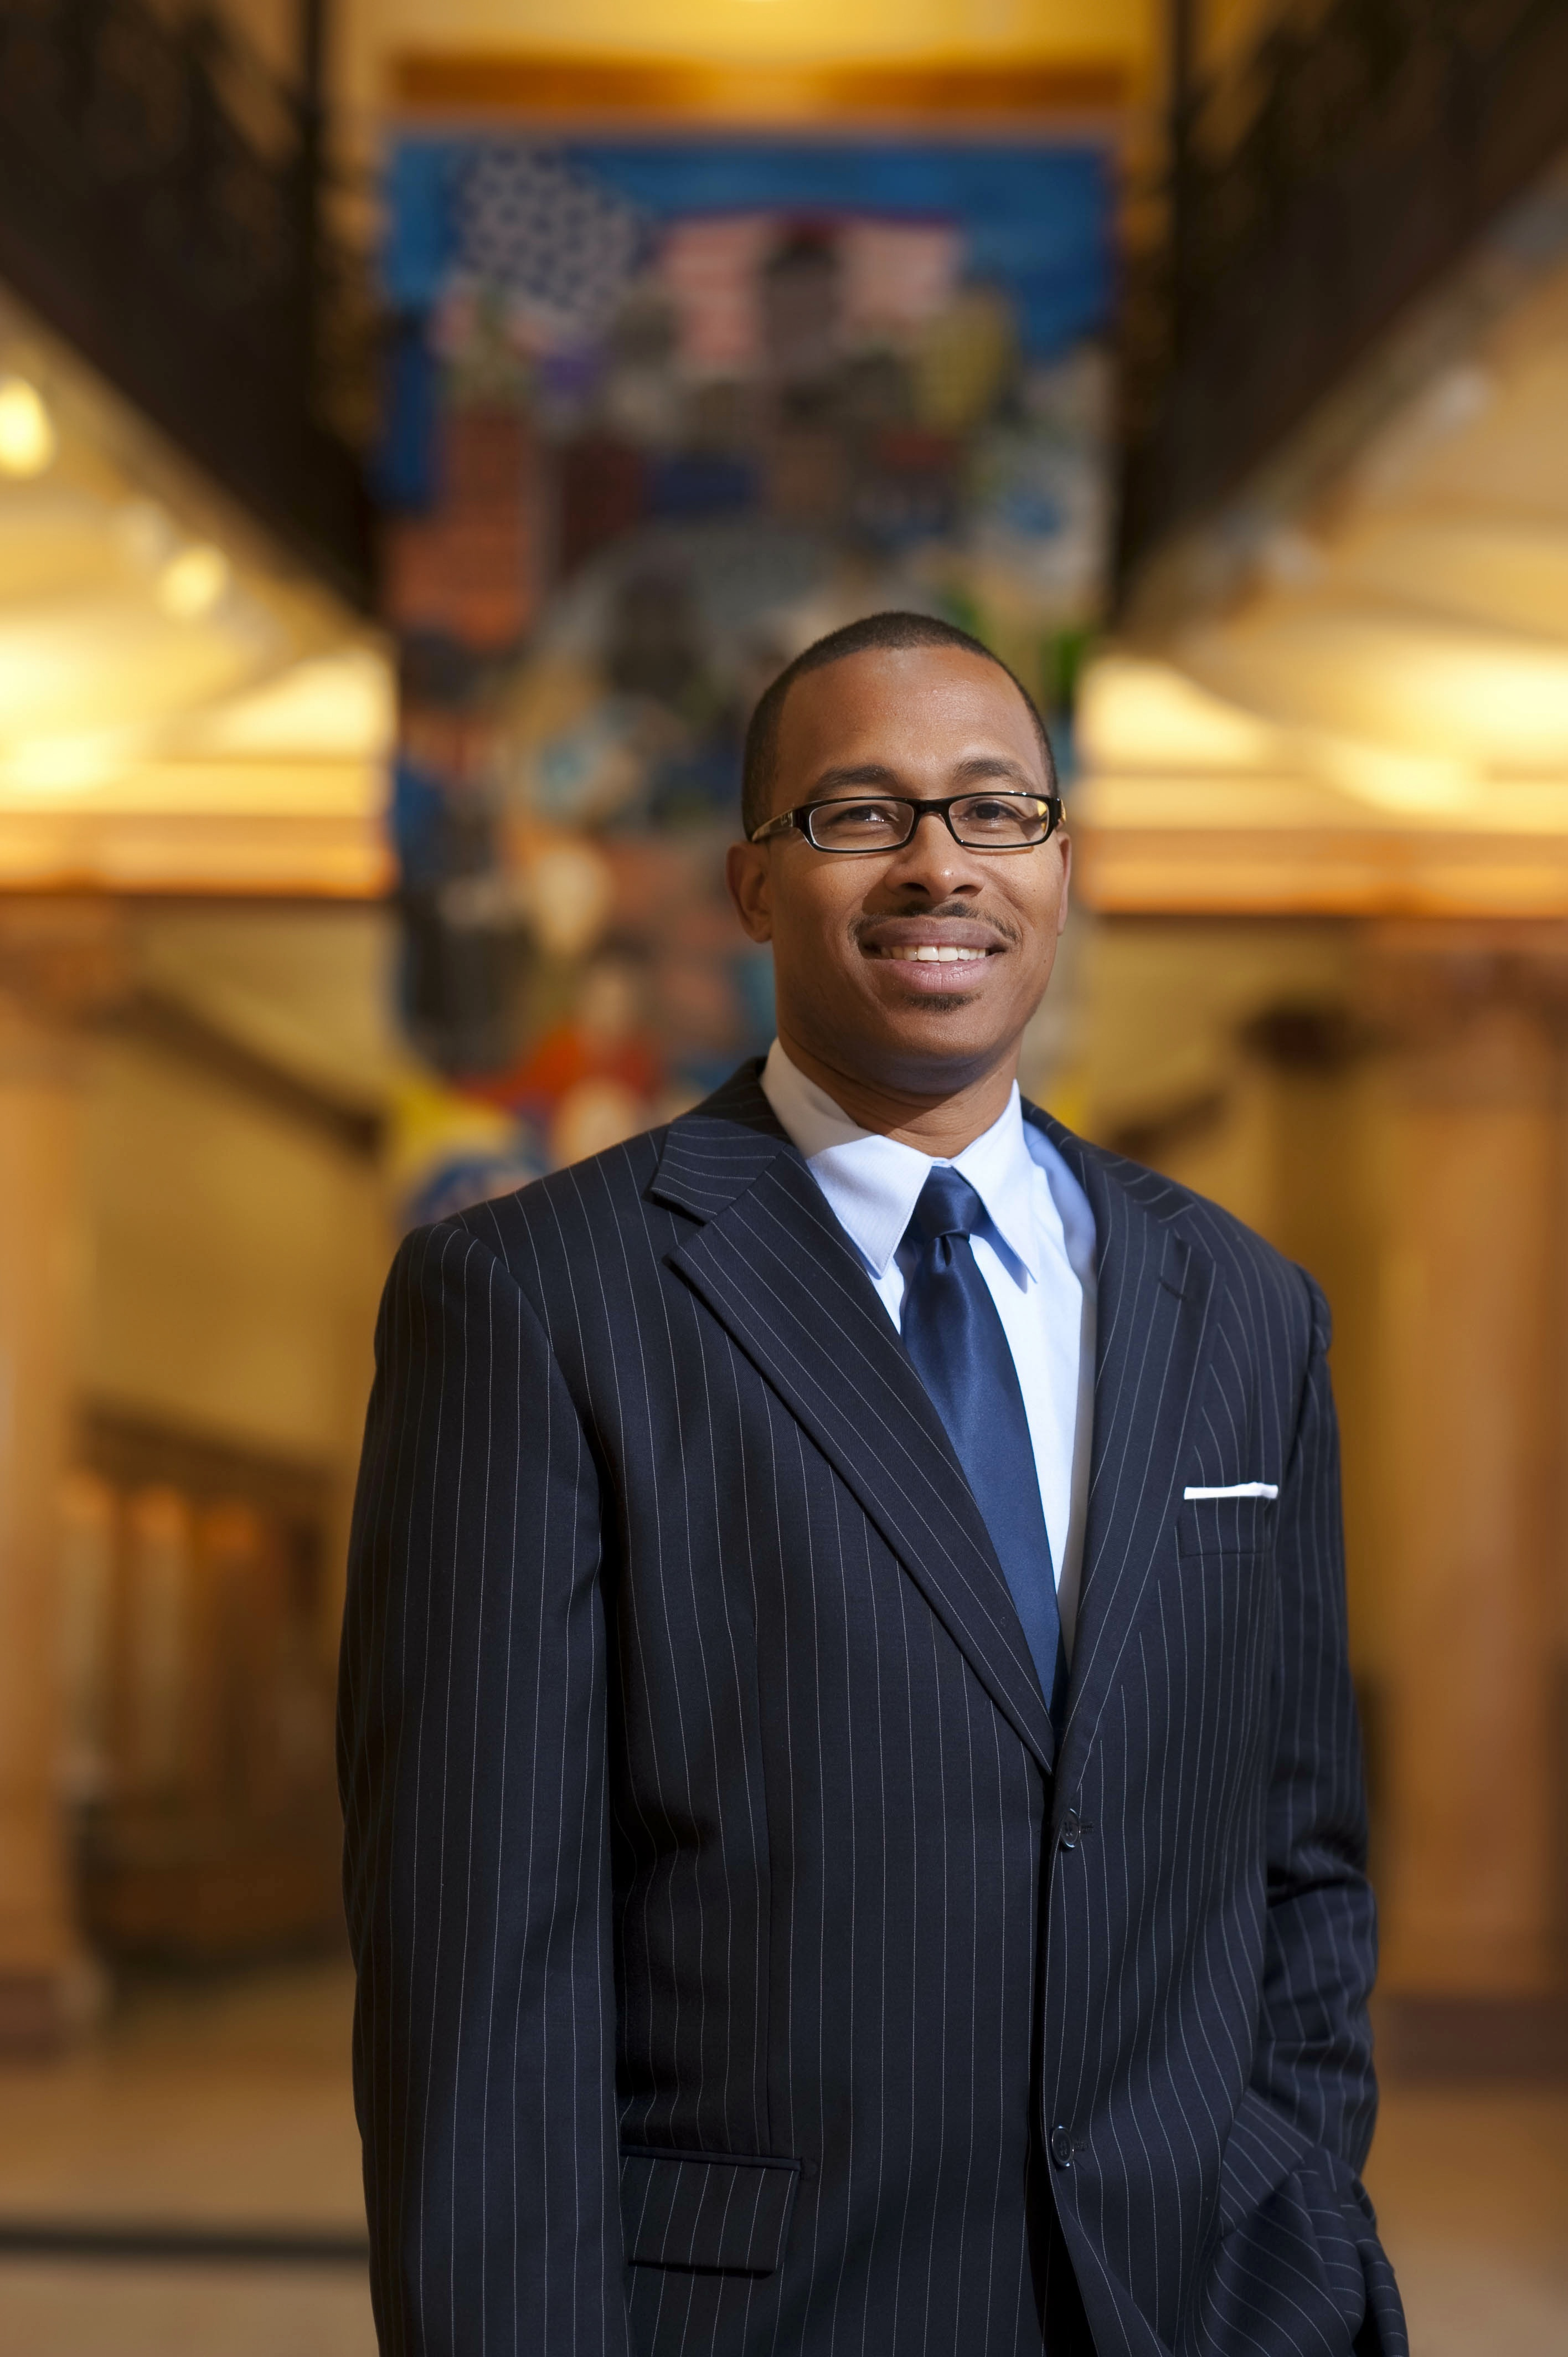 Johnny Thomas Announces Candidacy for City Comptroller